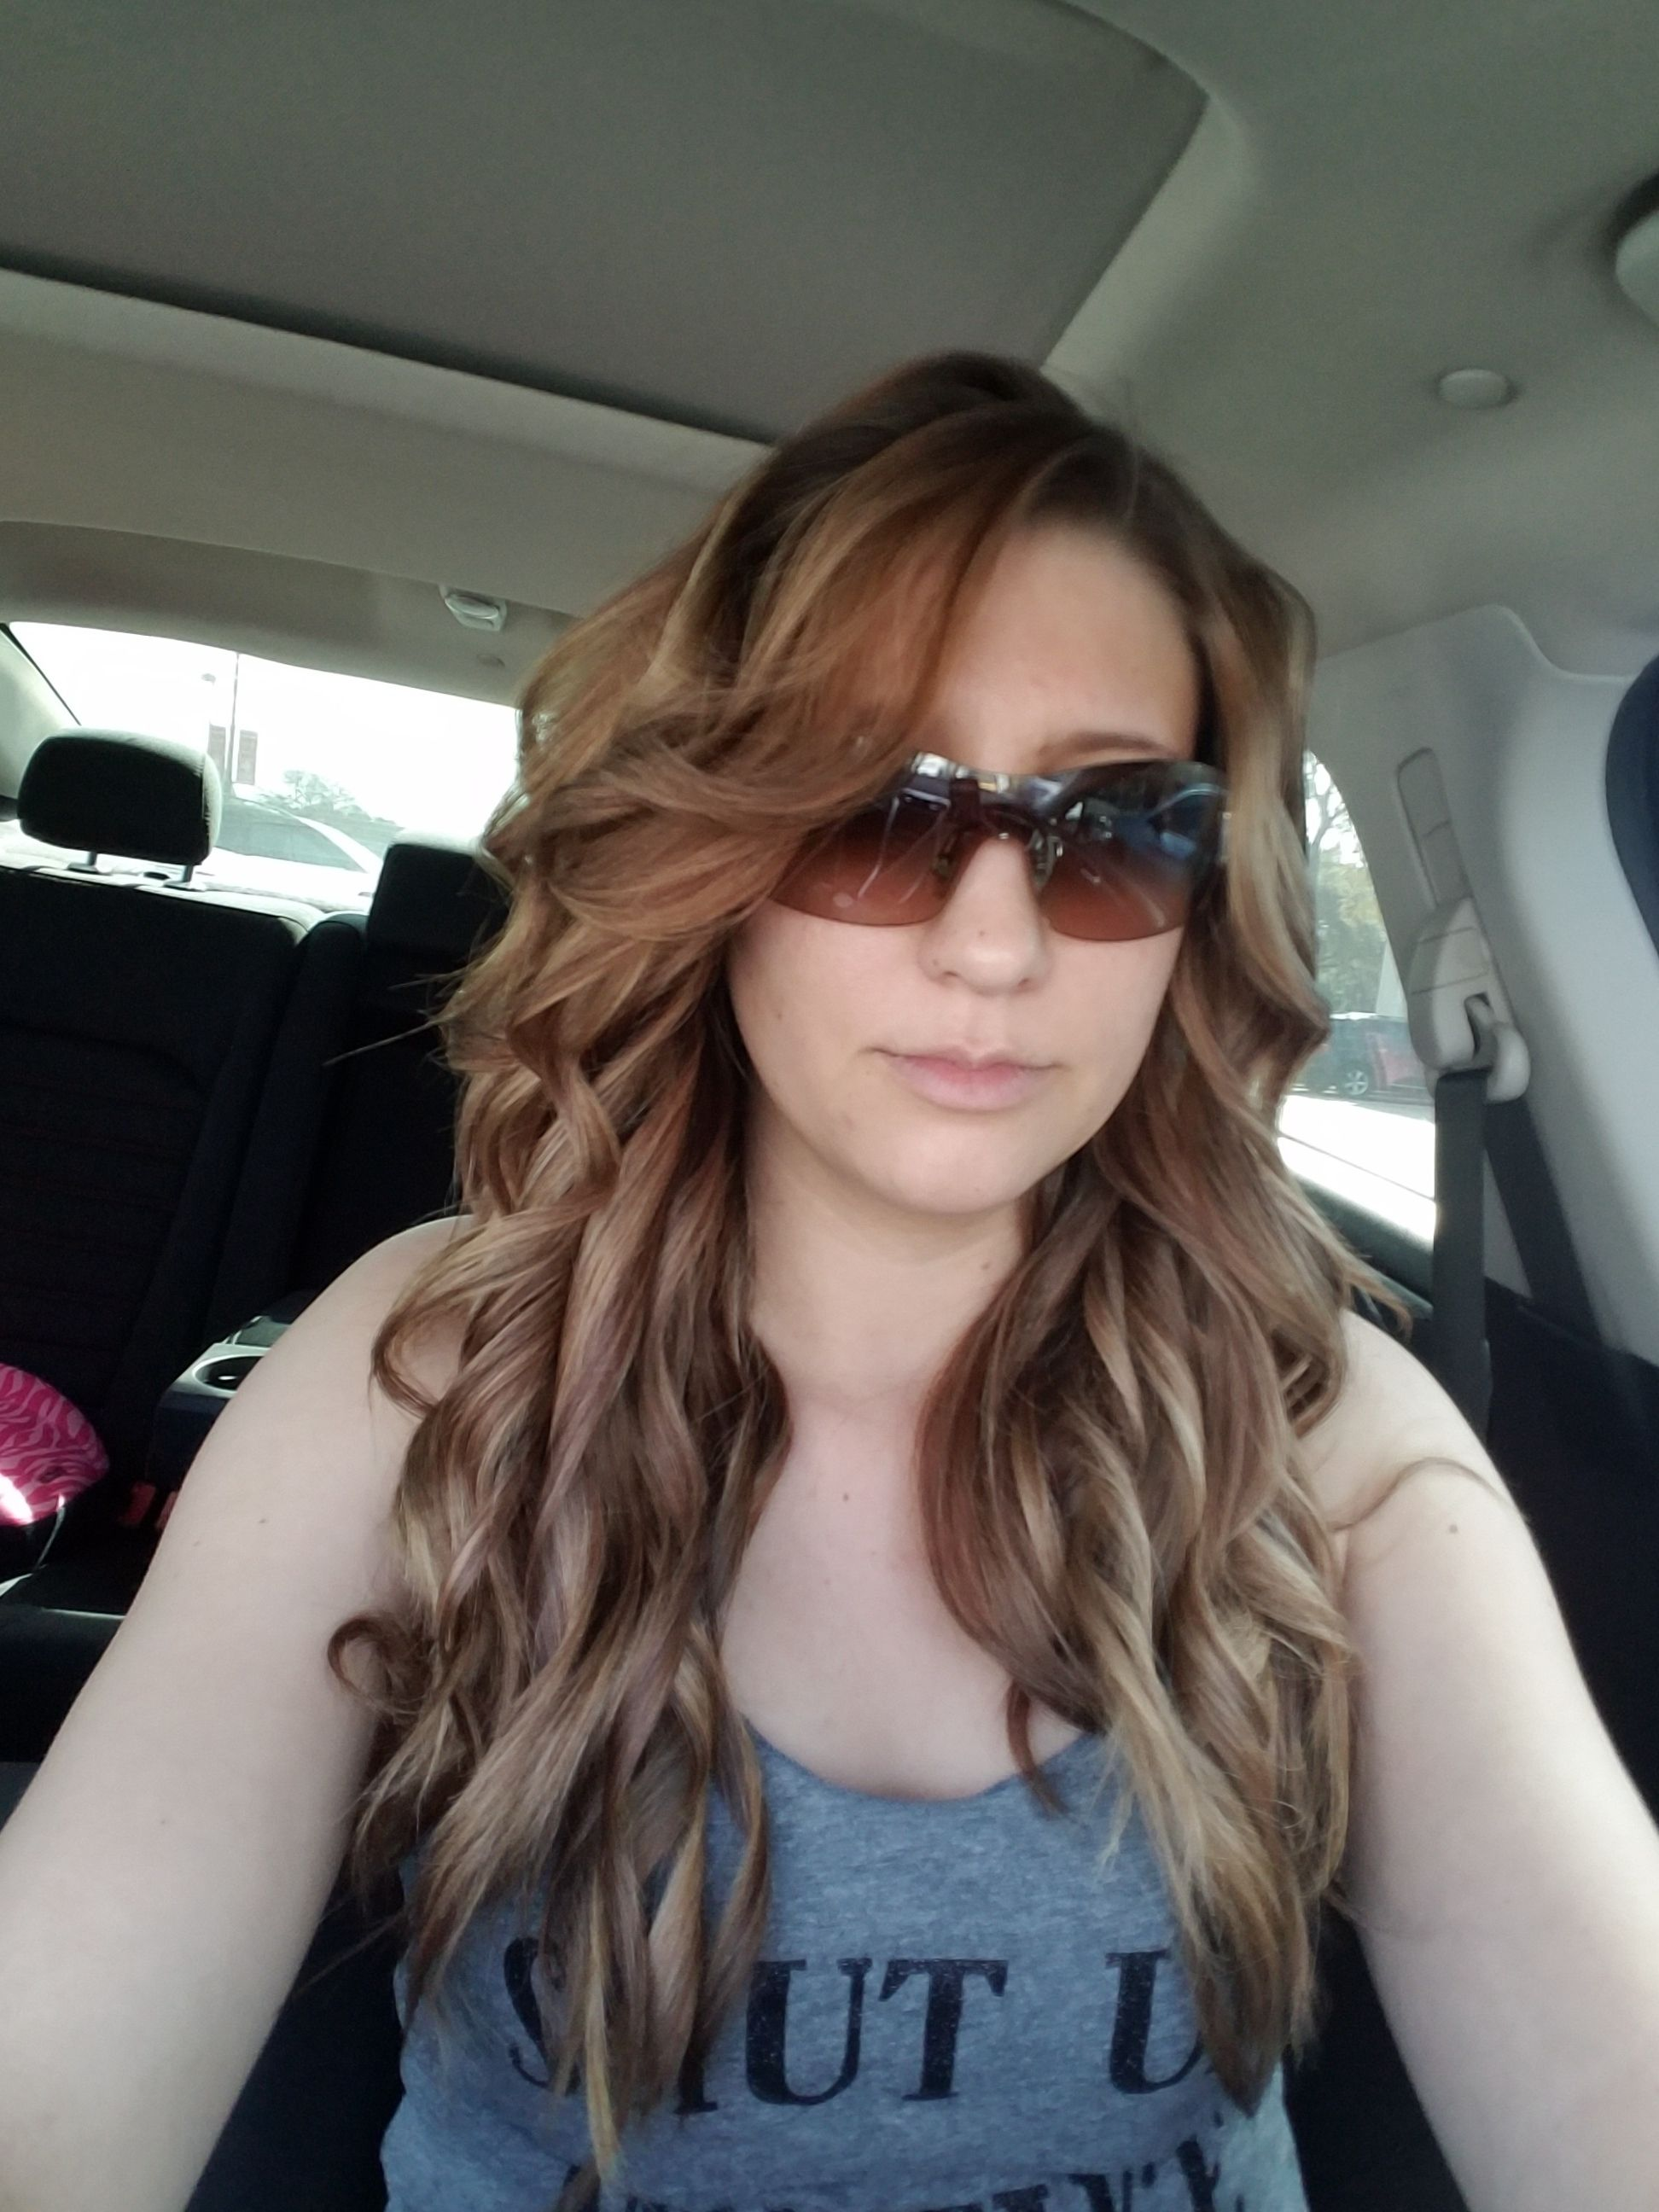 samantha hawkins thesis tx We found debbie hawkins in texas find arrest records, phone numbers, emails, twitter, social profiles and more.